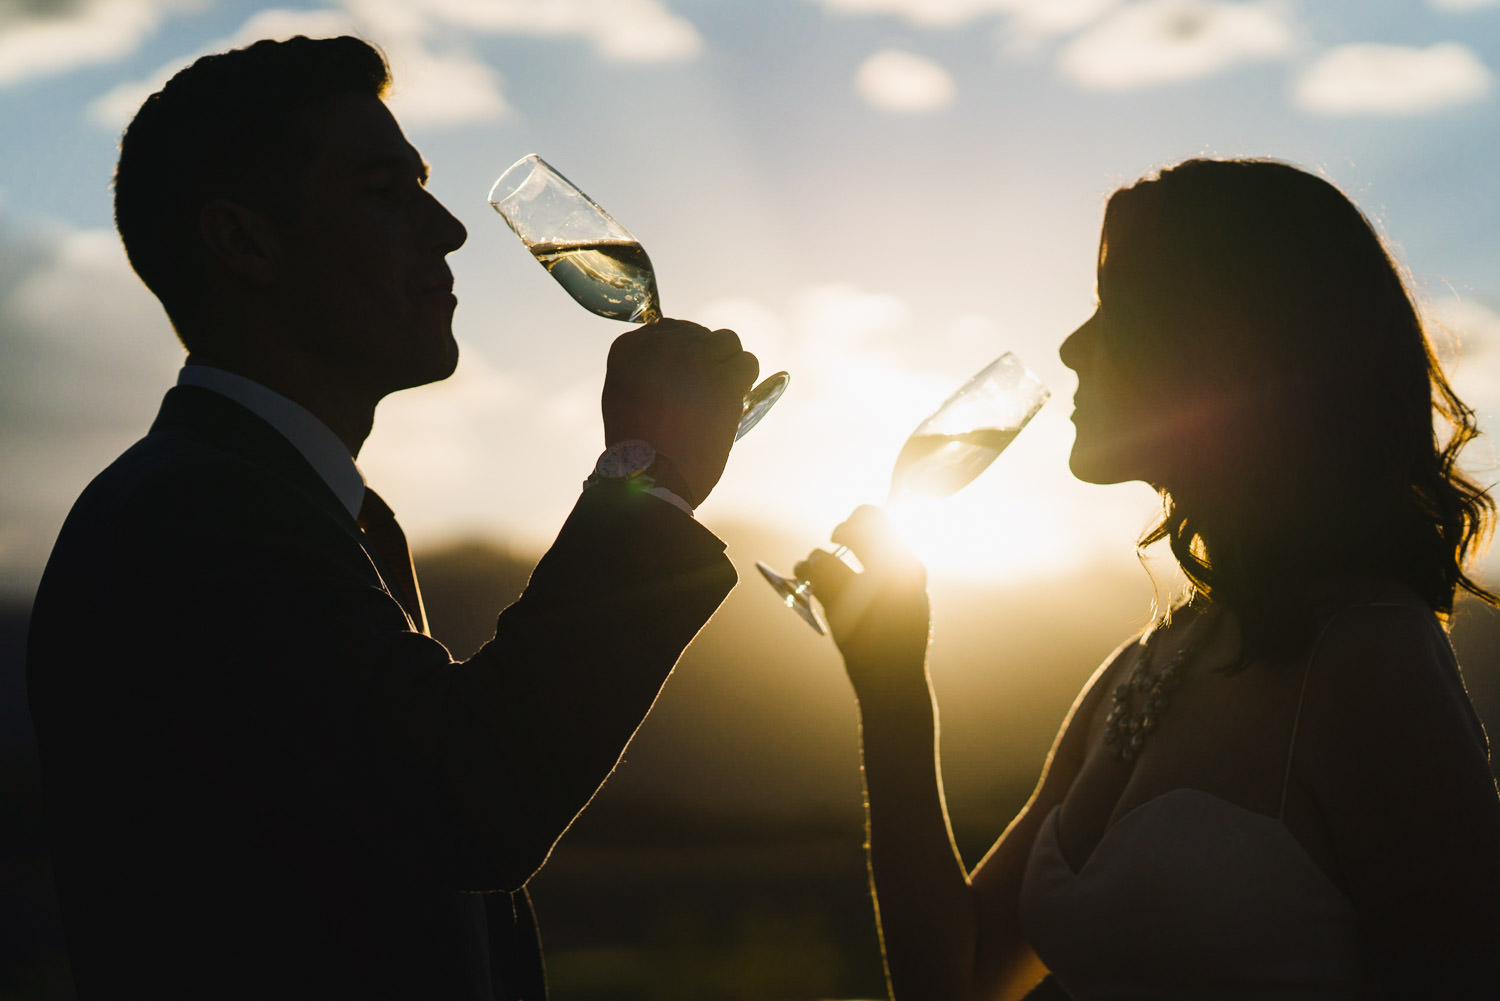 Tuhaye Golf Club Wedding bride and groom drinking champagne at sunset photo